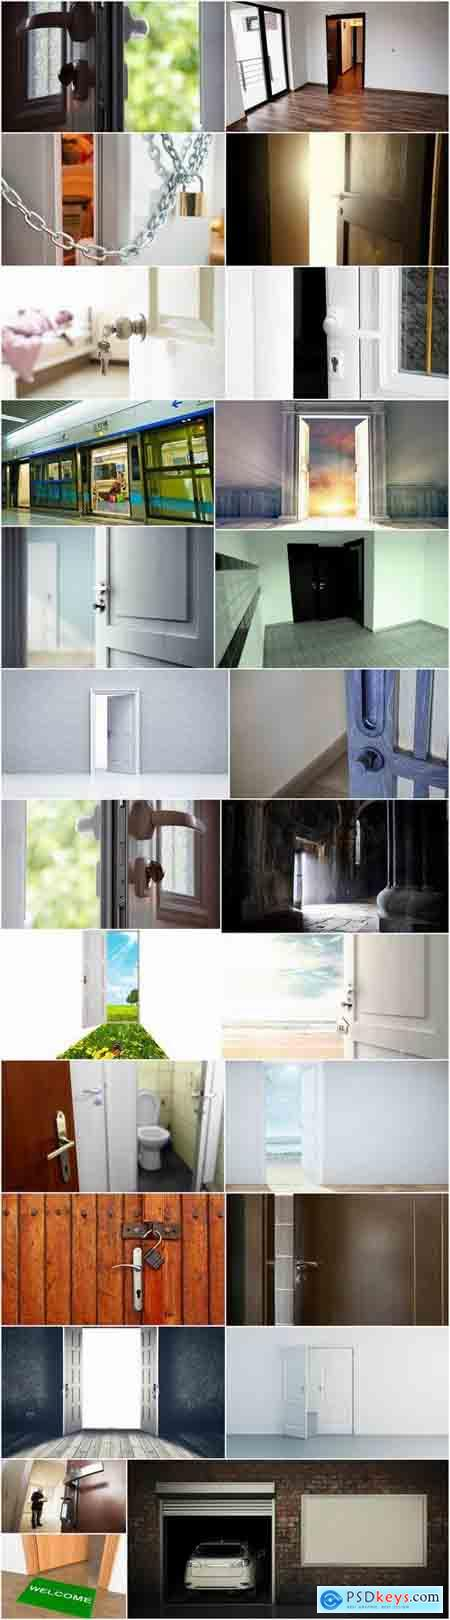 Open door the conceptual image handle frame 25 HQ Jpeg